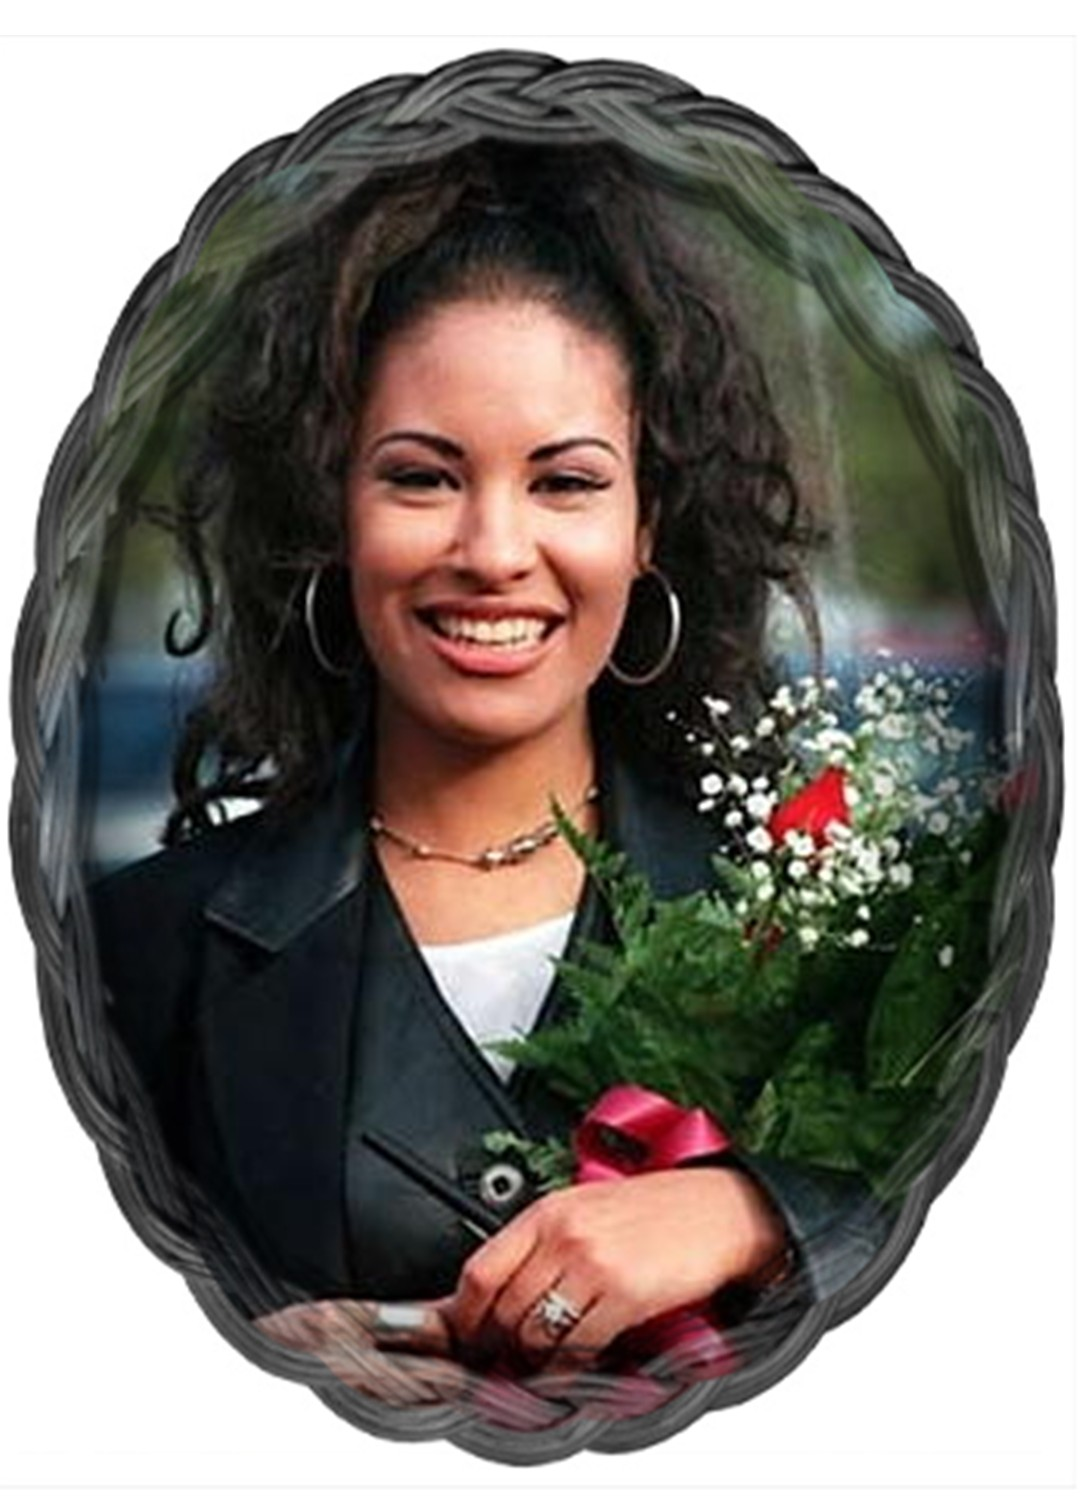 a biography of selena quintanilla an american singer Selena quintanilla biography, life, interesting facts selena quintanilla was an american singer who is best known for her tejano and latin music and her murder in 1995 childhood and early.